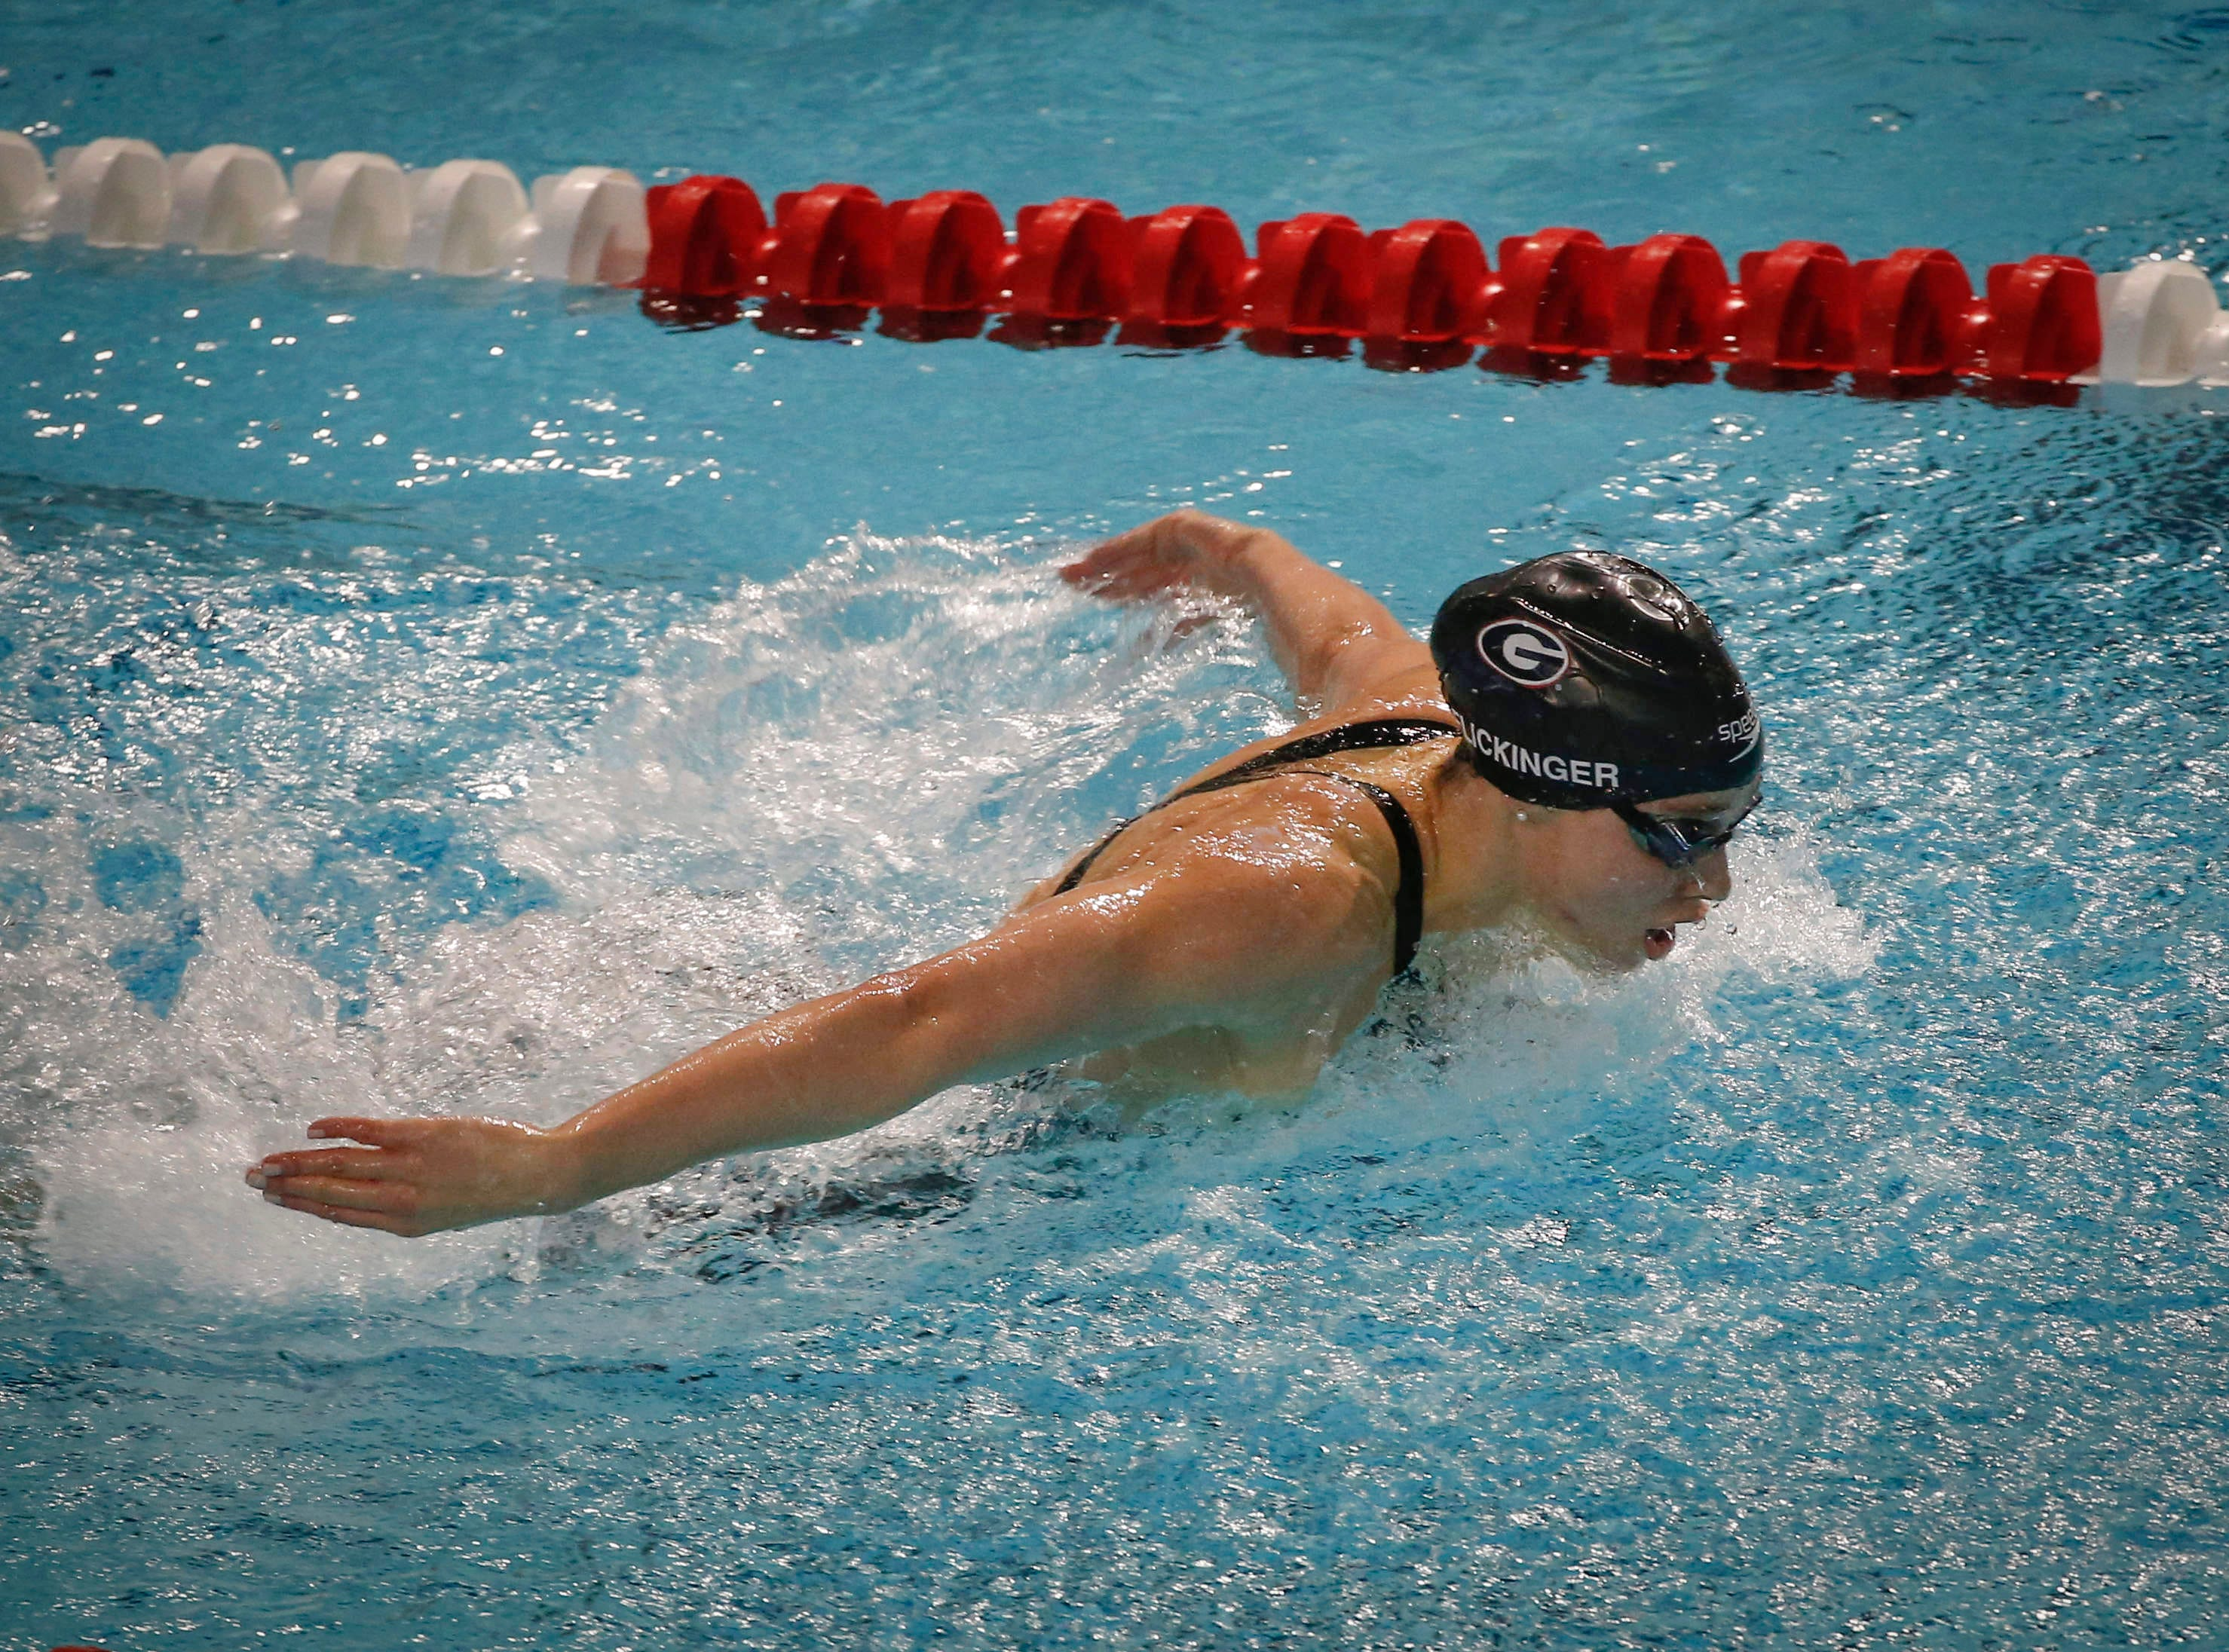 Hali Flickinger of the University of Georgia competes in the 200-meter butterfly during the 2019 TYR Pro Swim Series on Thursday, March 7, 2019, at the downtown YMCA pool in Des Moines.